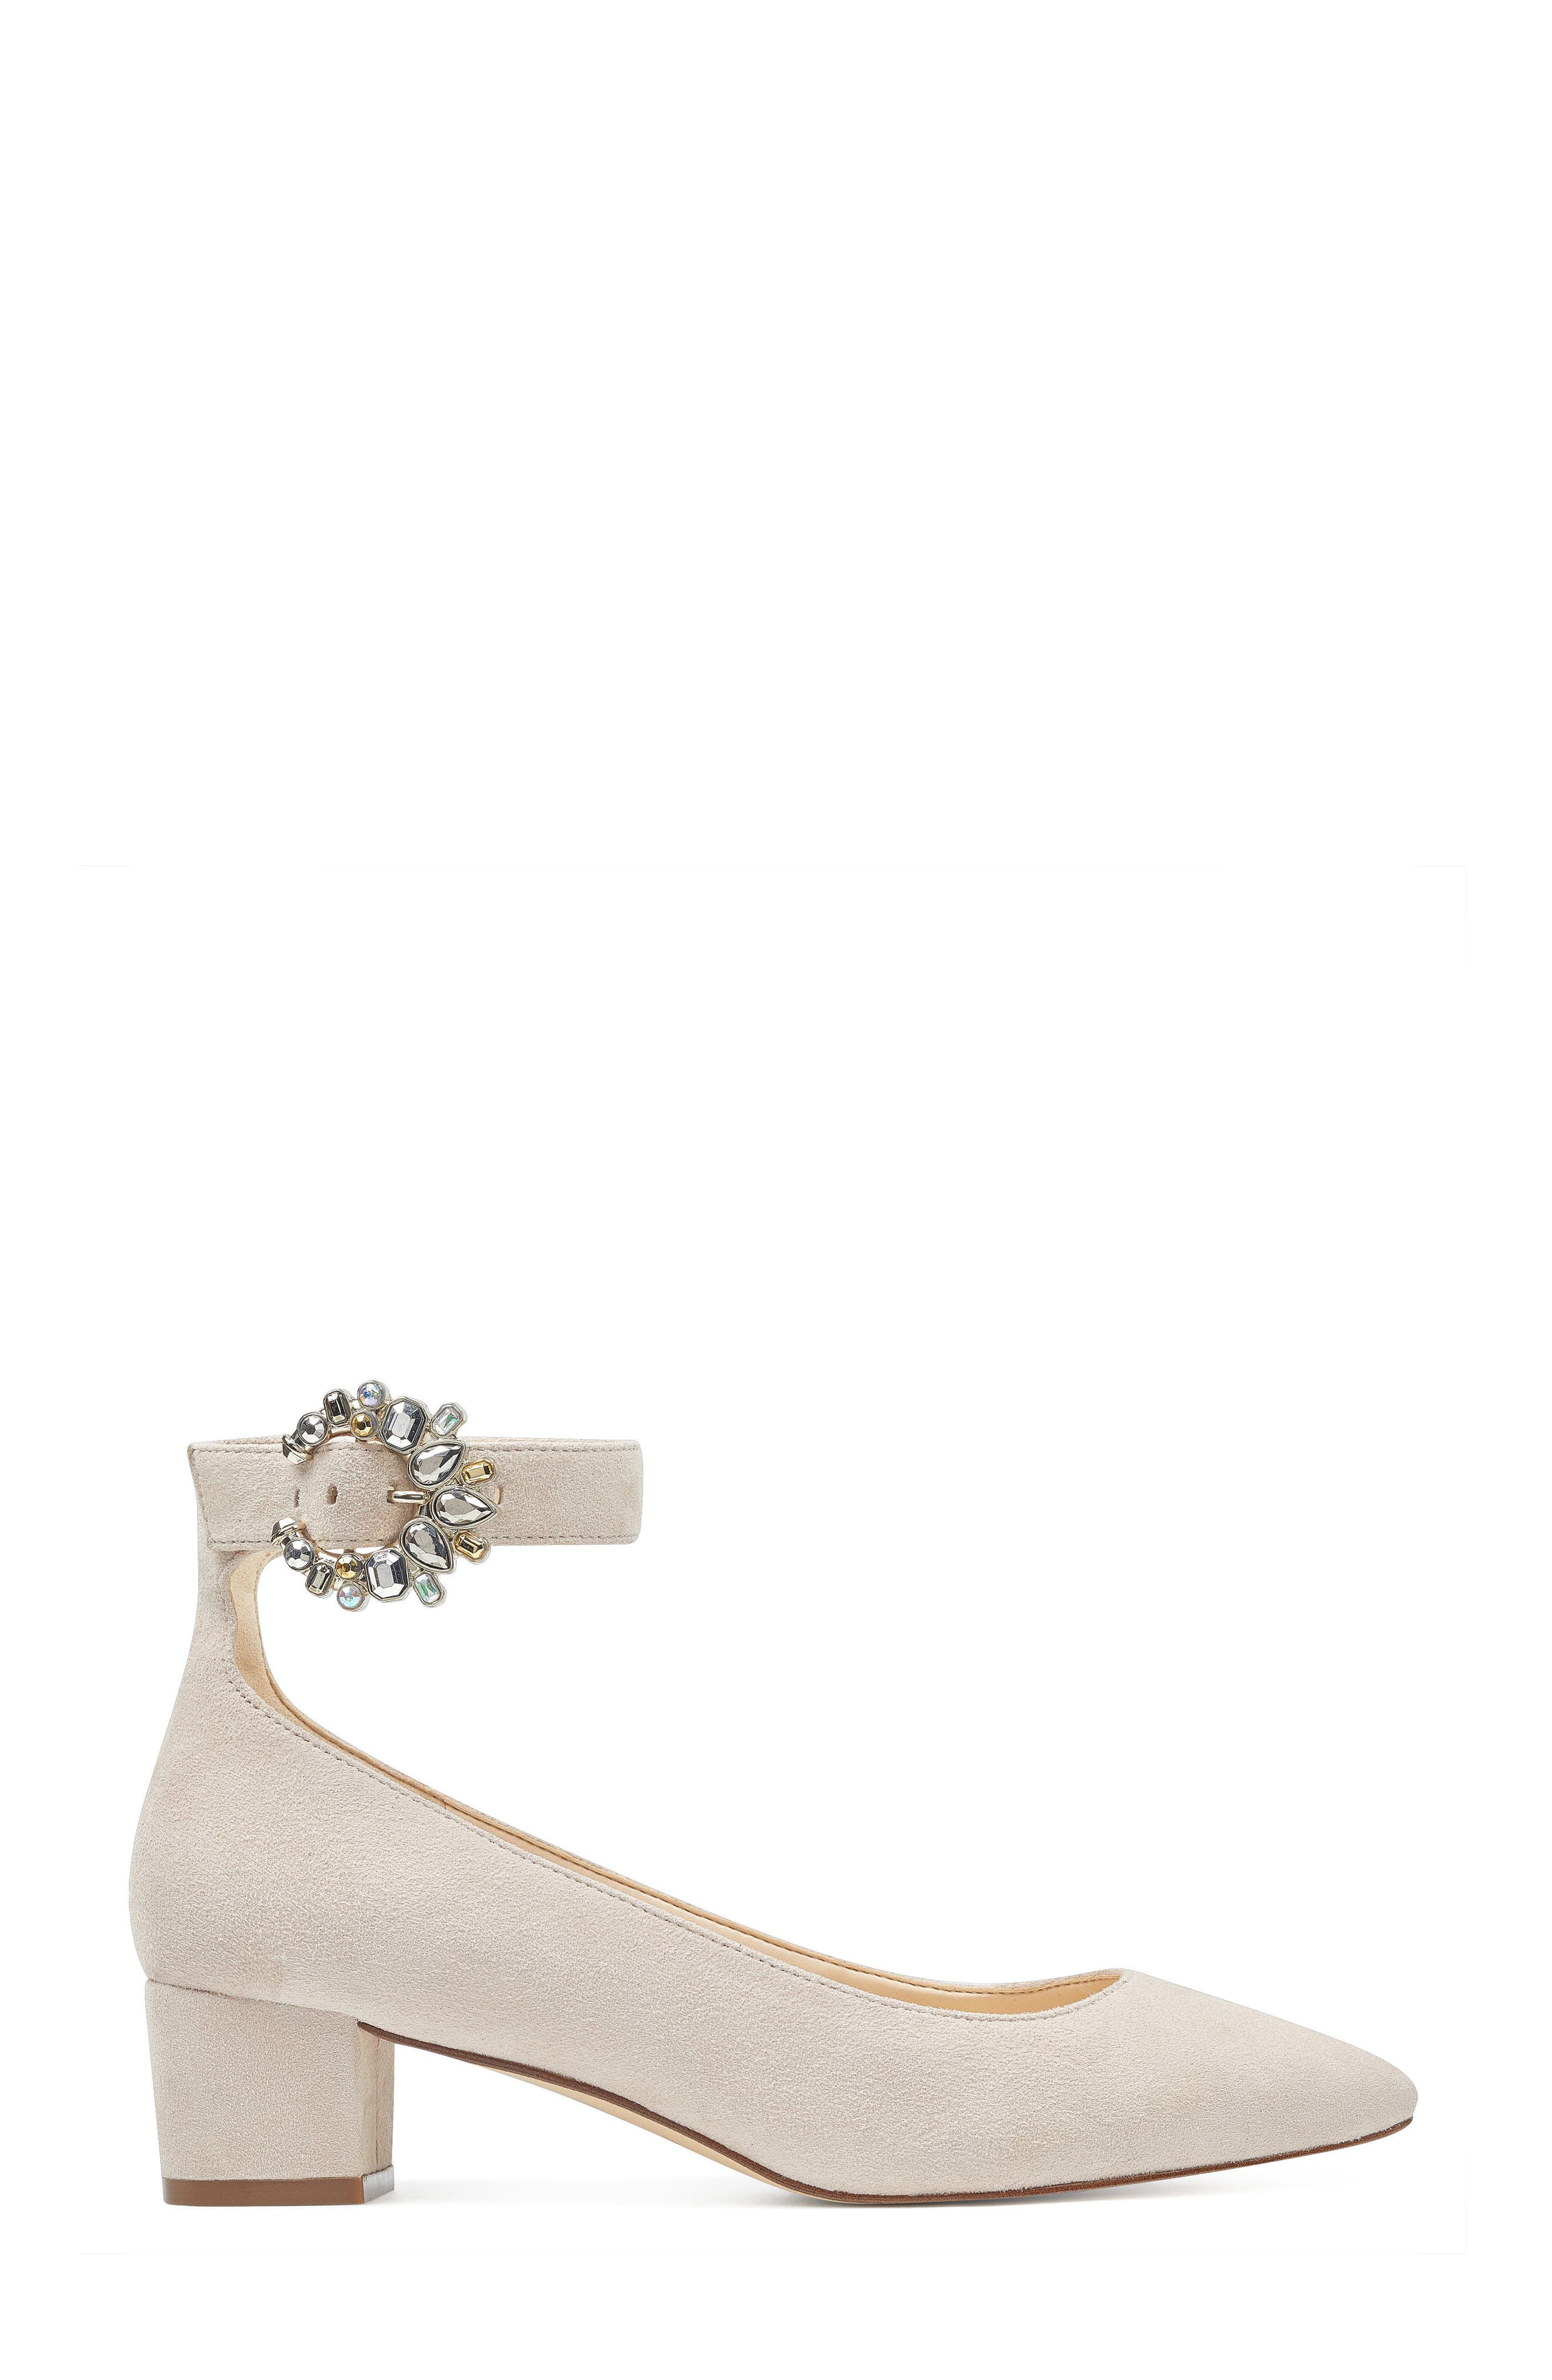 Bartly Ankle Strap Pump,                             Alternate thumbnail 8, color,